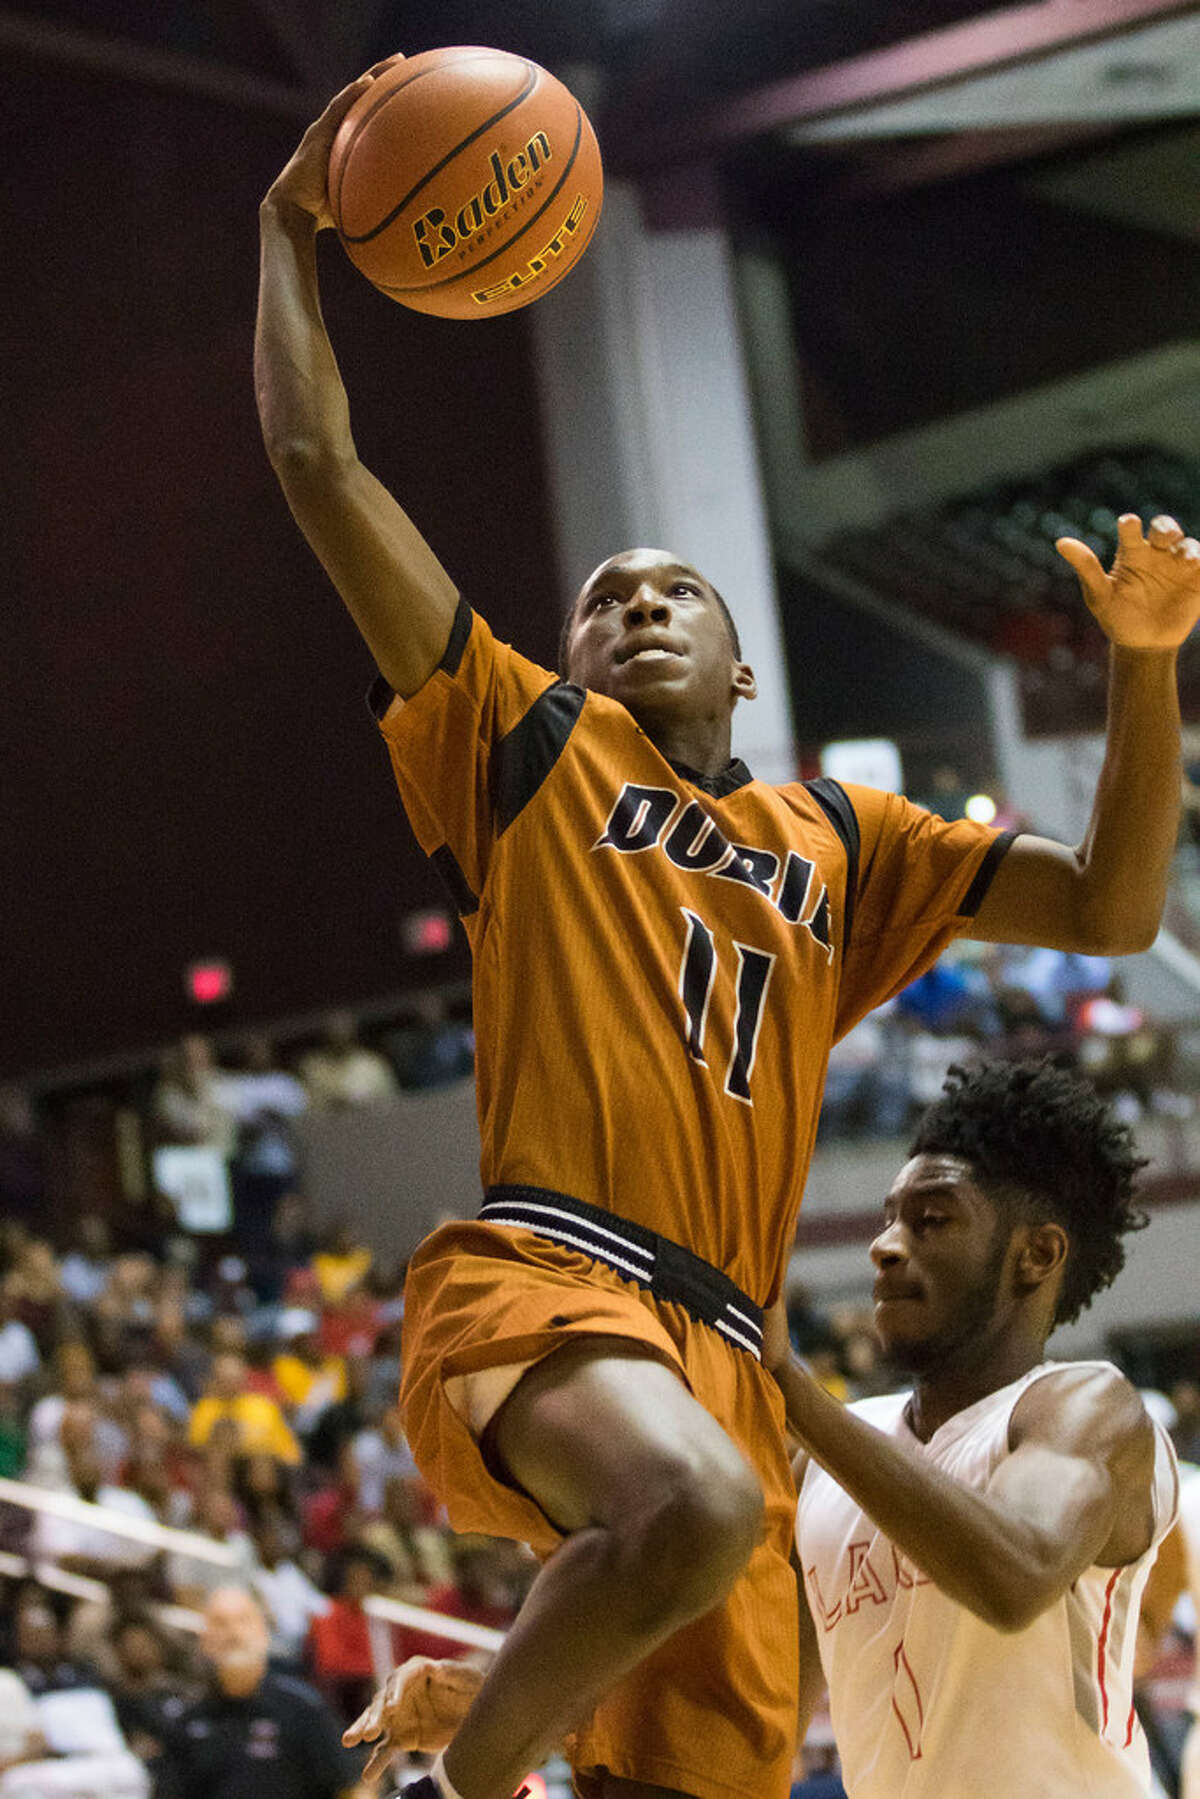 Dobie Longhorns guard Jeremy Williams (11) drives the lane for a lay up against the the Cypress Lakes Spartans' in the Class 6A Boys Basketball Region III semifinals at the Campbell Center, Friday, March 4, 2016, in Houston, TX. ( Joe Buvid / For the Chronicle )